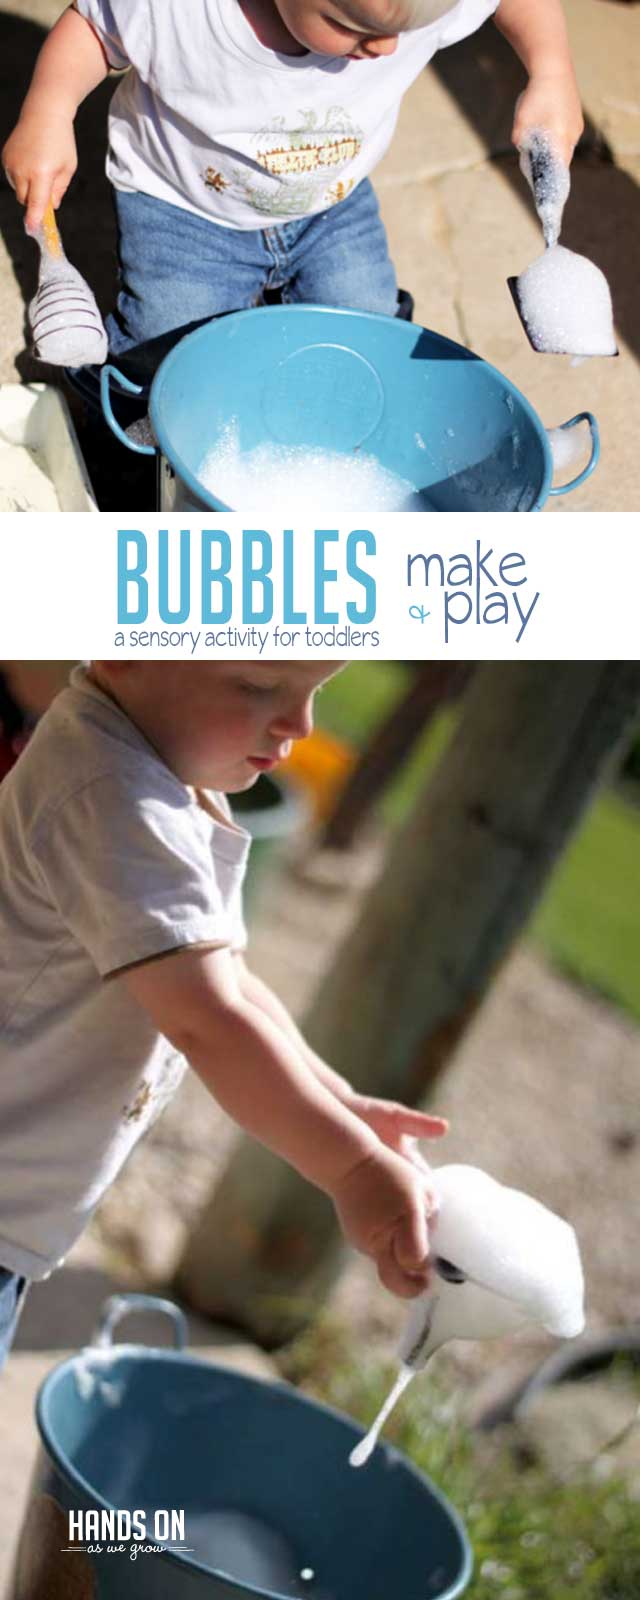 Making bubbles with soap is a super easy and fun sensory play activity for preschoolers.